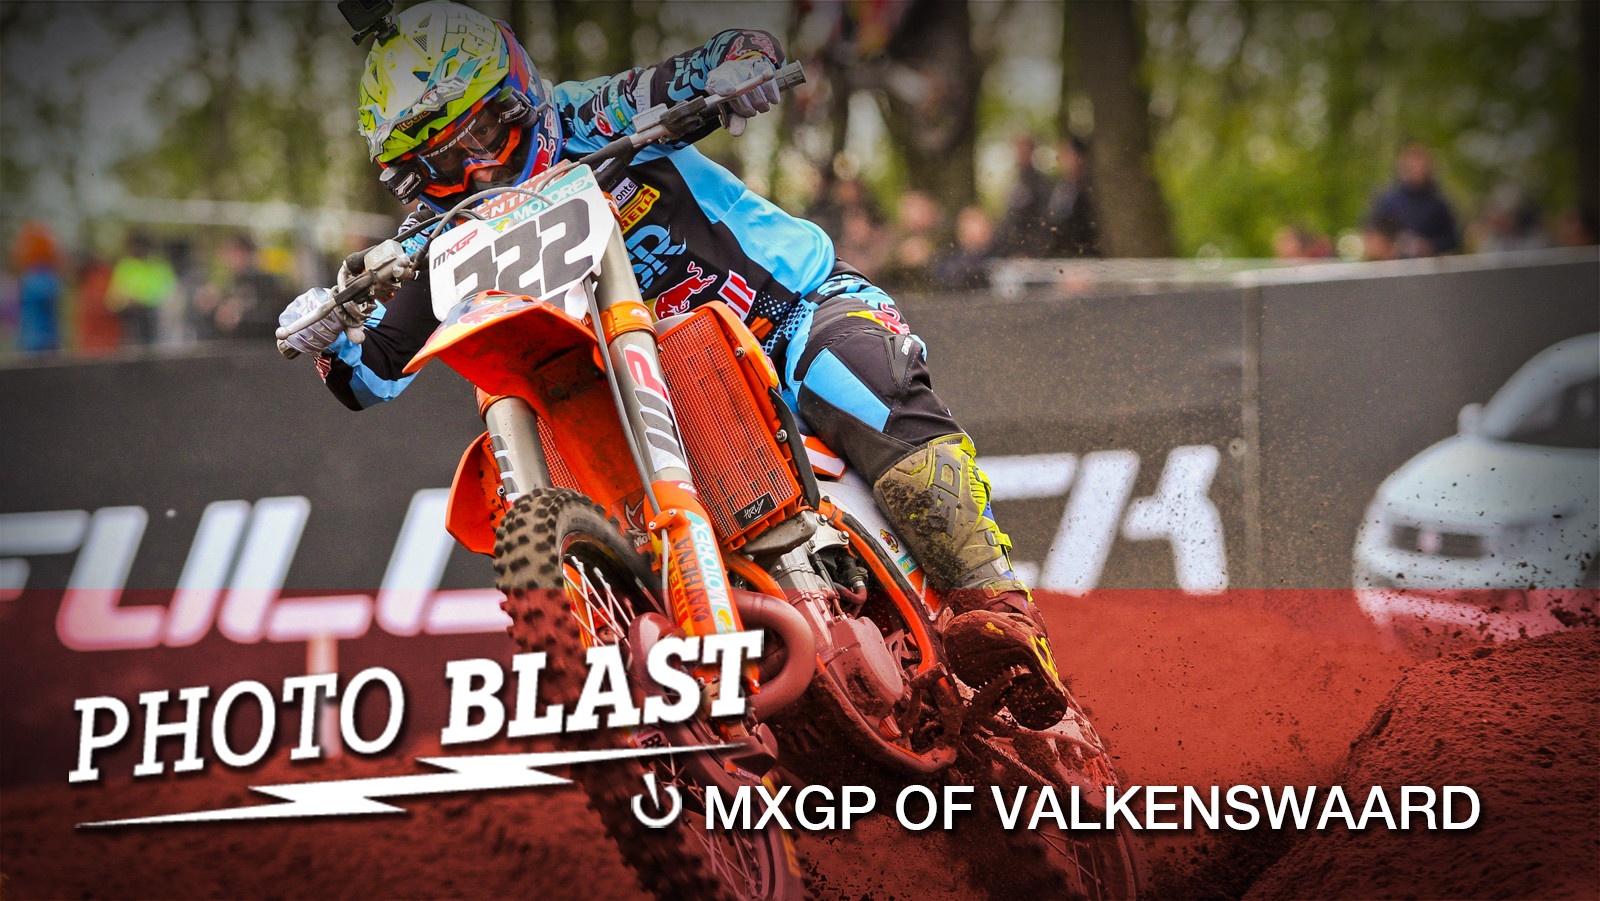 Photo Blast: 2017 MXGP of Valkenswaard - Antonio Cairoli - Photo Blast: 2017 MXGP of Valkenswaard - Motocross Pictures - Vital MX